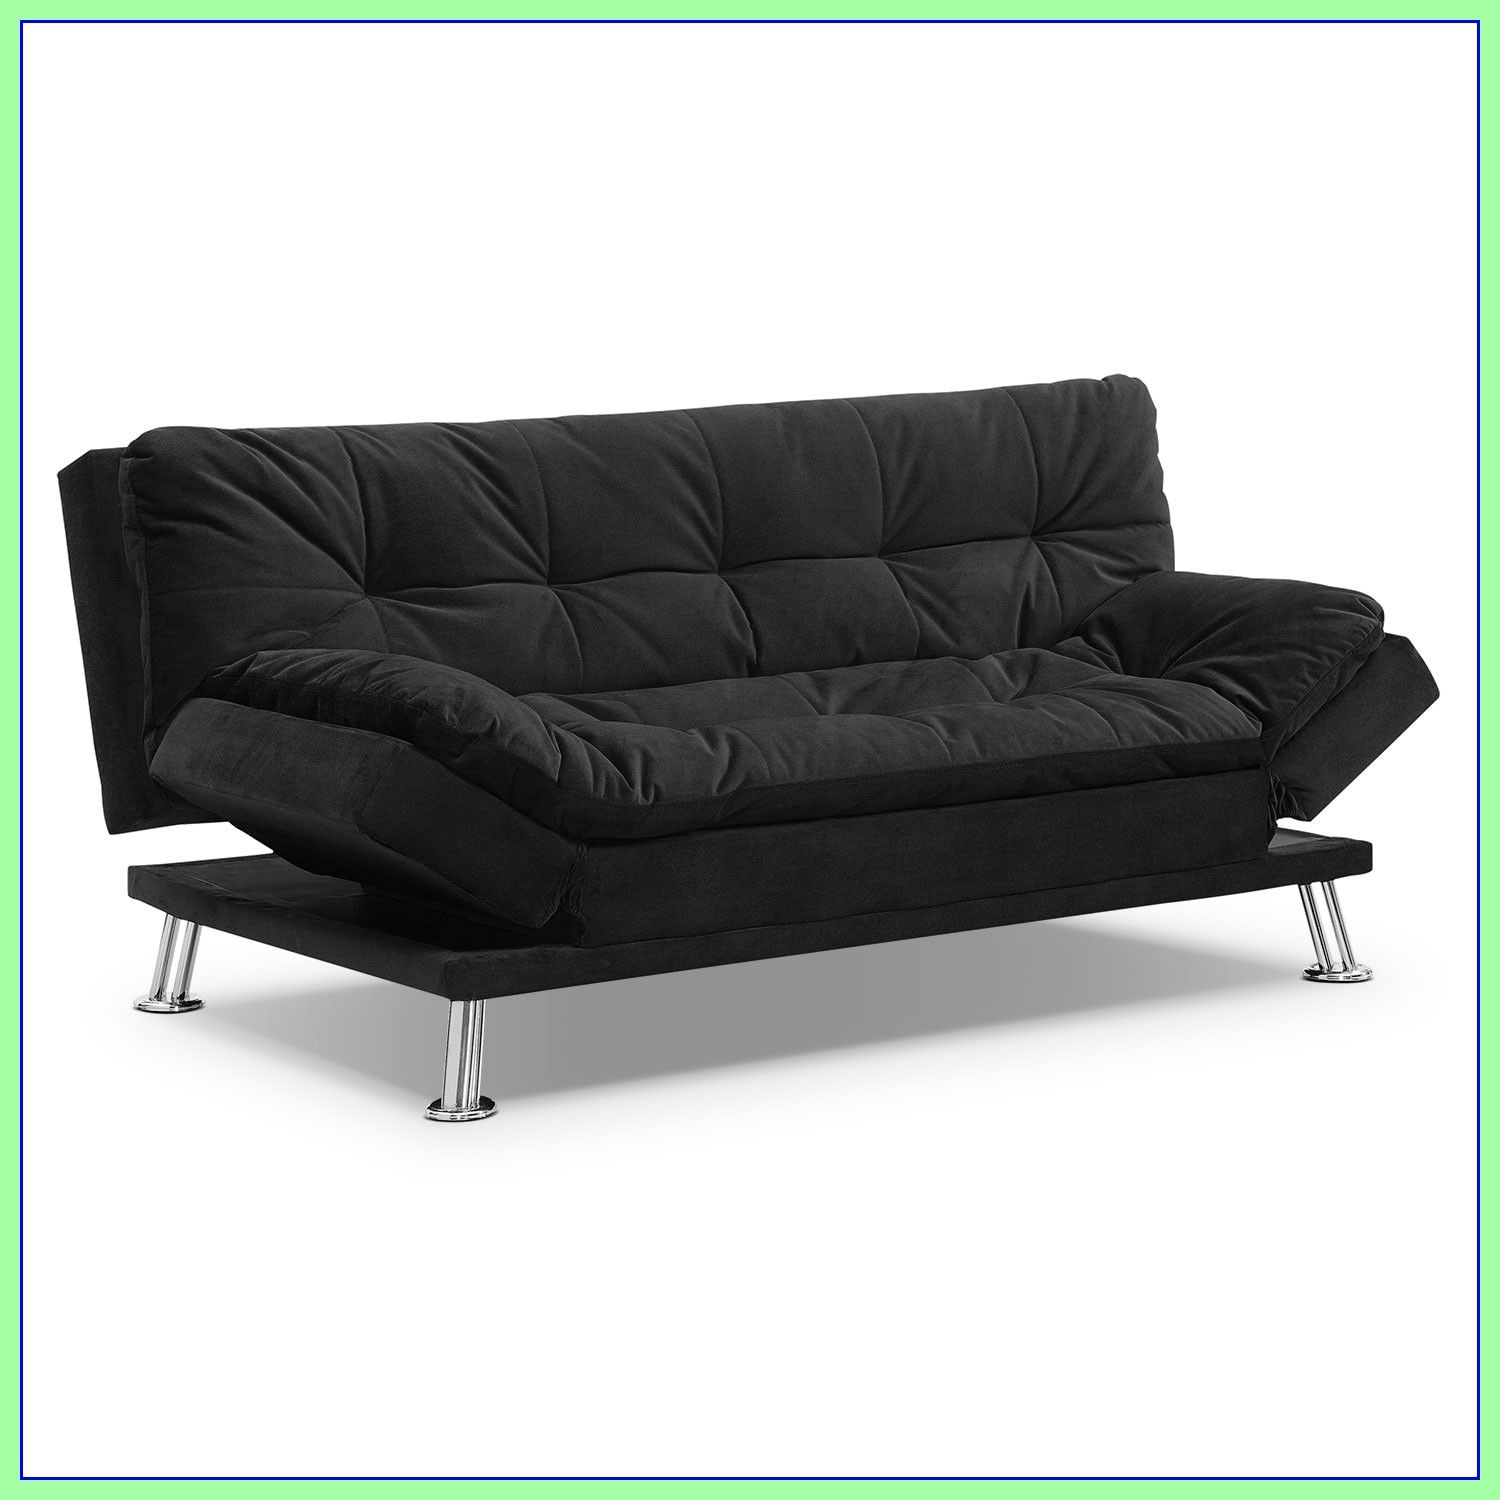 Couch Black Bed Couch Black Bed Please Click Link To Find More Reference Enjoy In 2020 Futon Black Futon Futon Bed